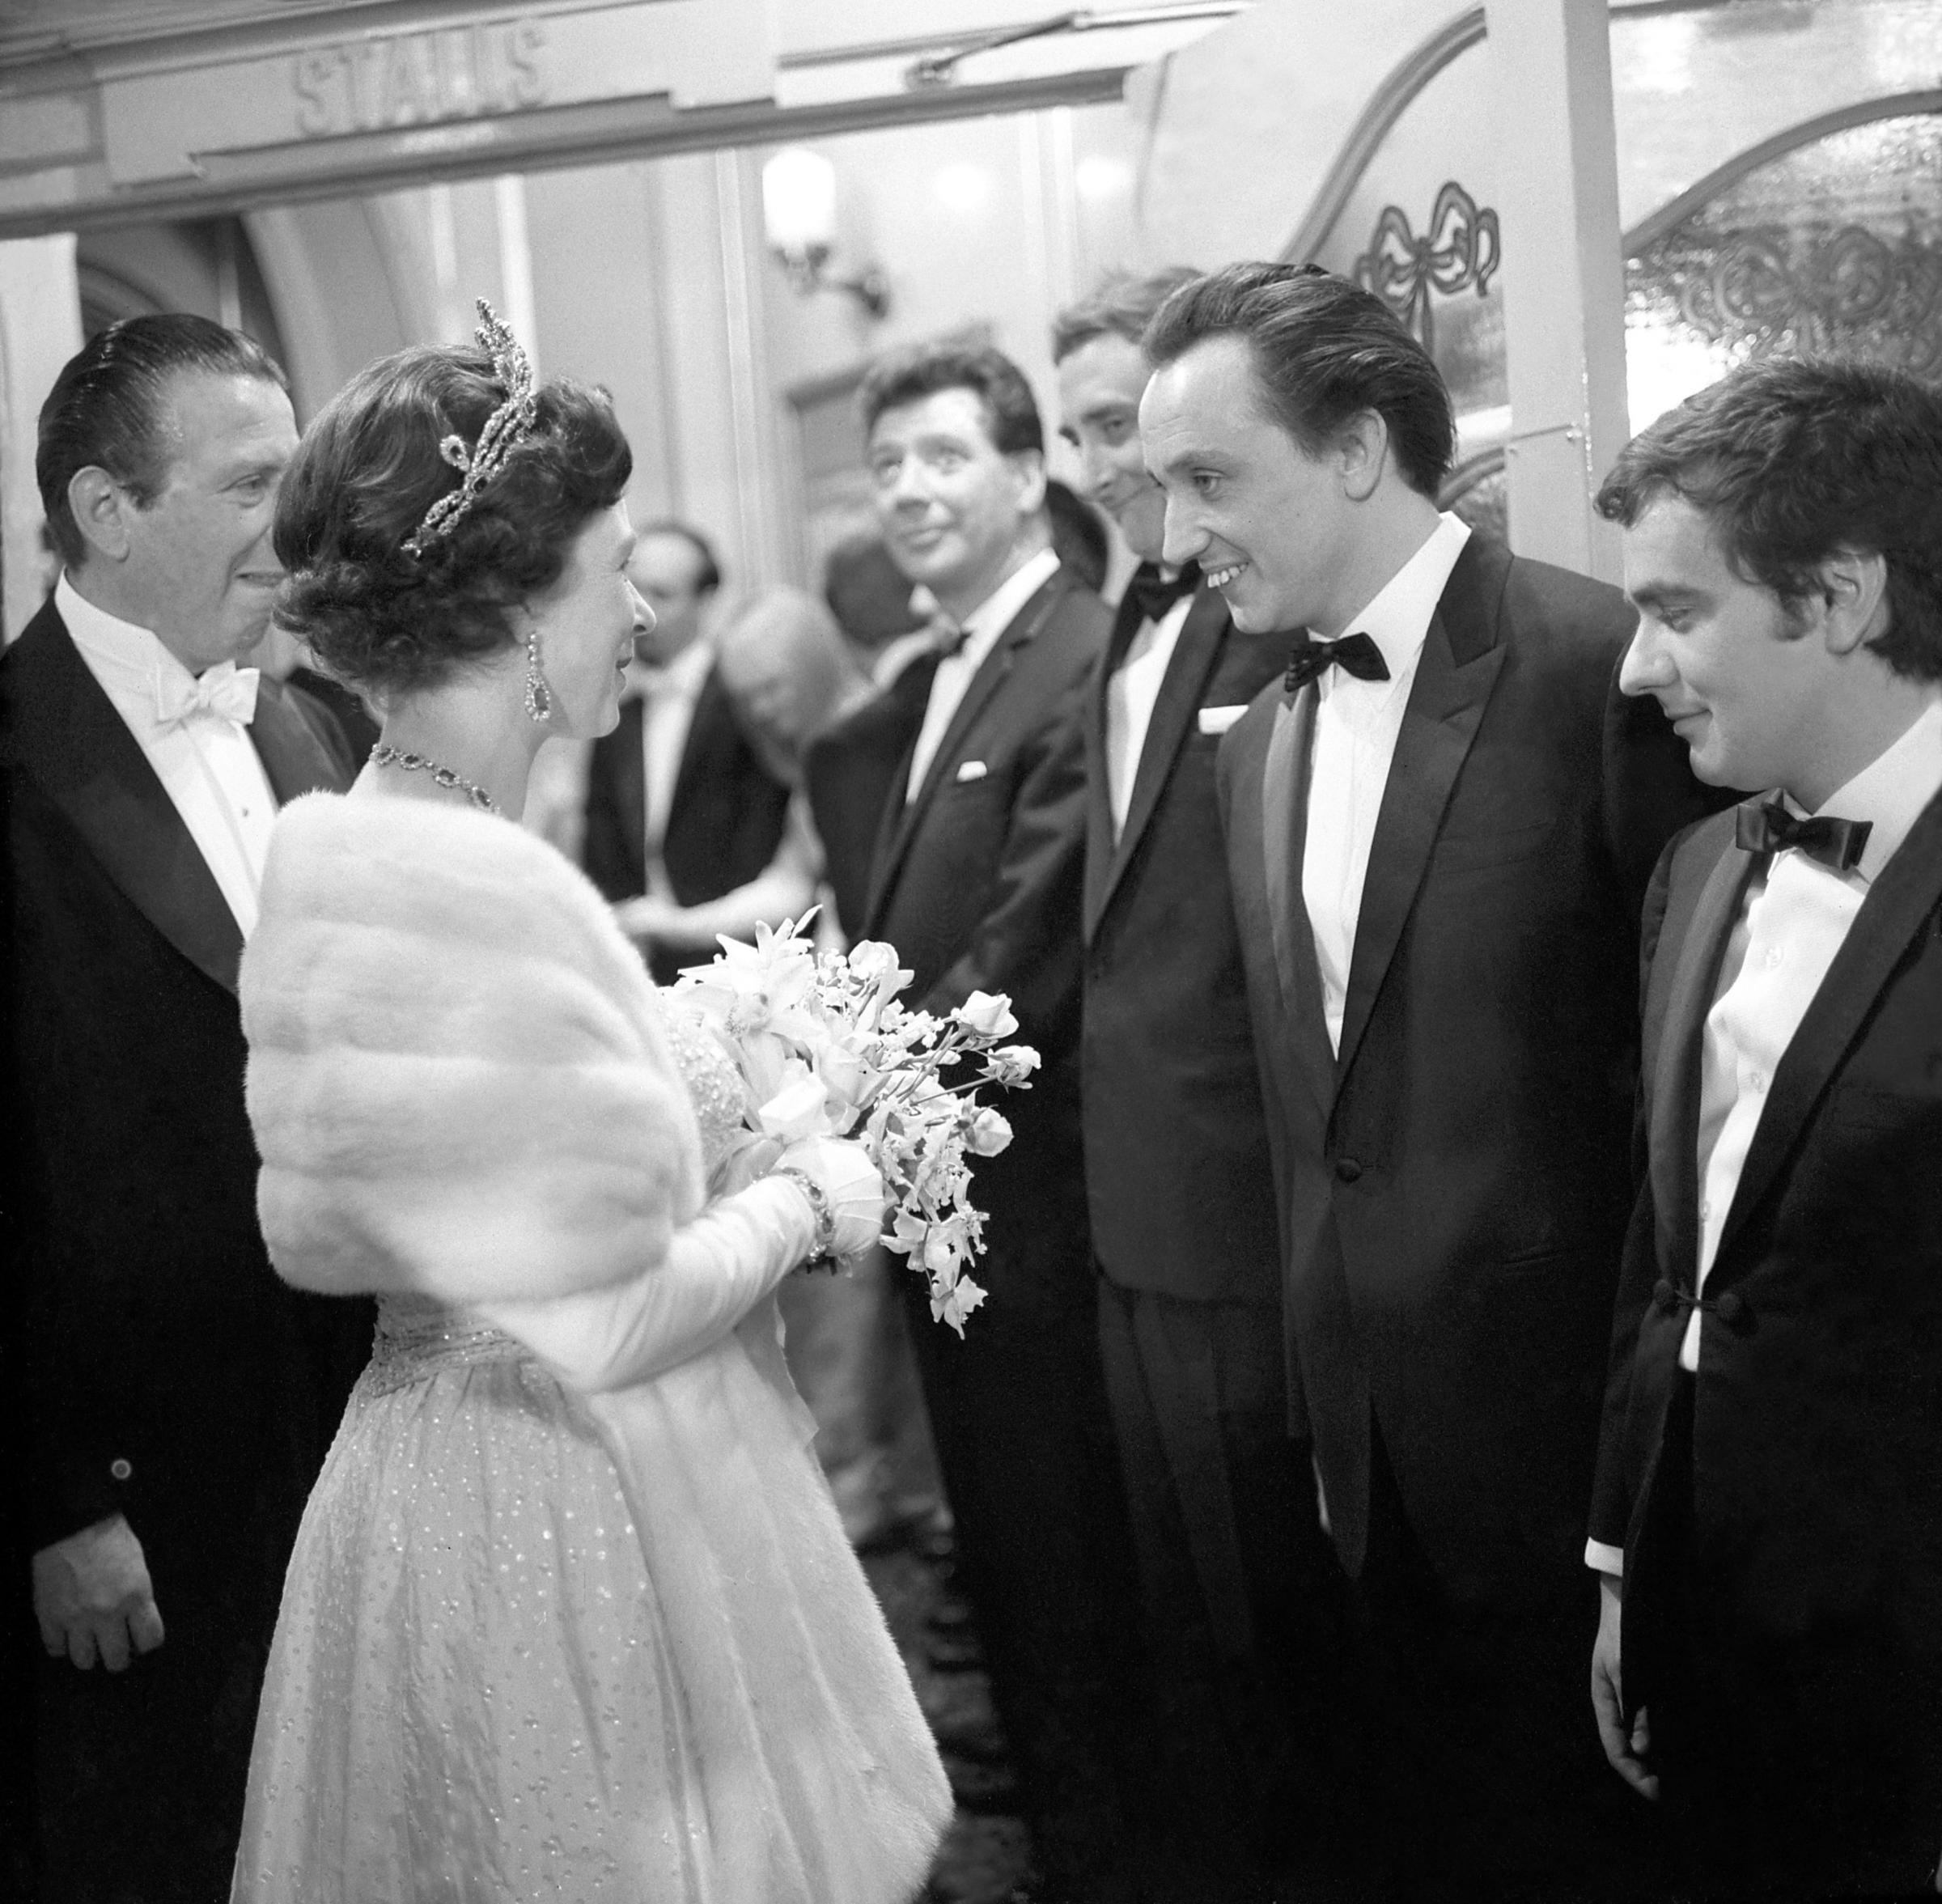 Queen Elizabeth II talks with Liverpool comedian Ken Dodd when the stars were presented at the Royal Variety Performance at the London Palladium. At left are Max Bygraves, Spike Milligan and Dudley Moore. File photo dated 09/11/1965 showing Sir Ken Dodd,